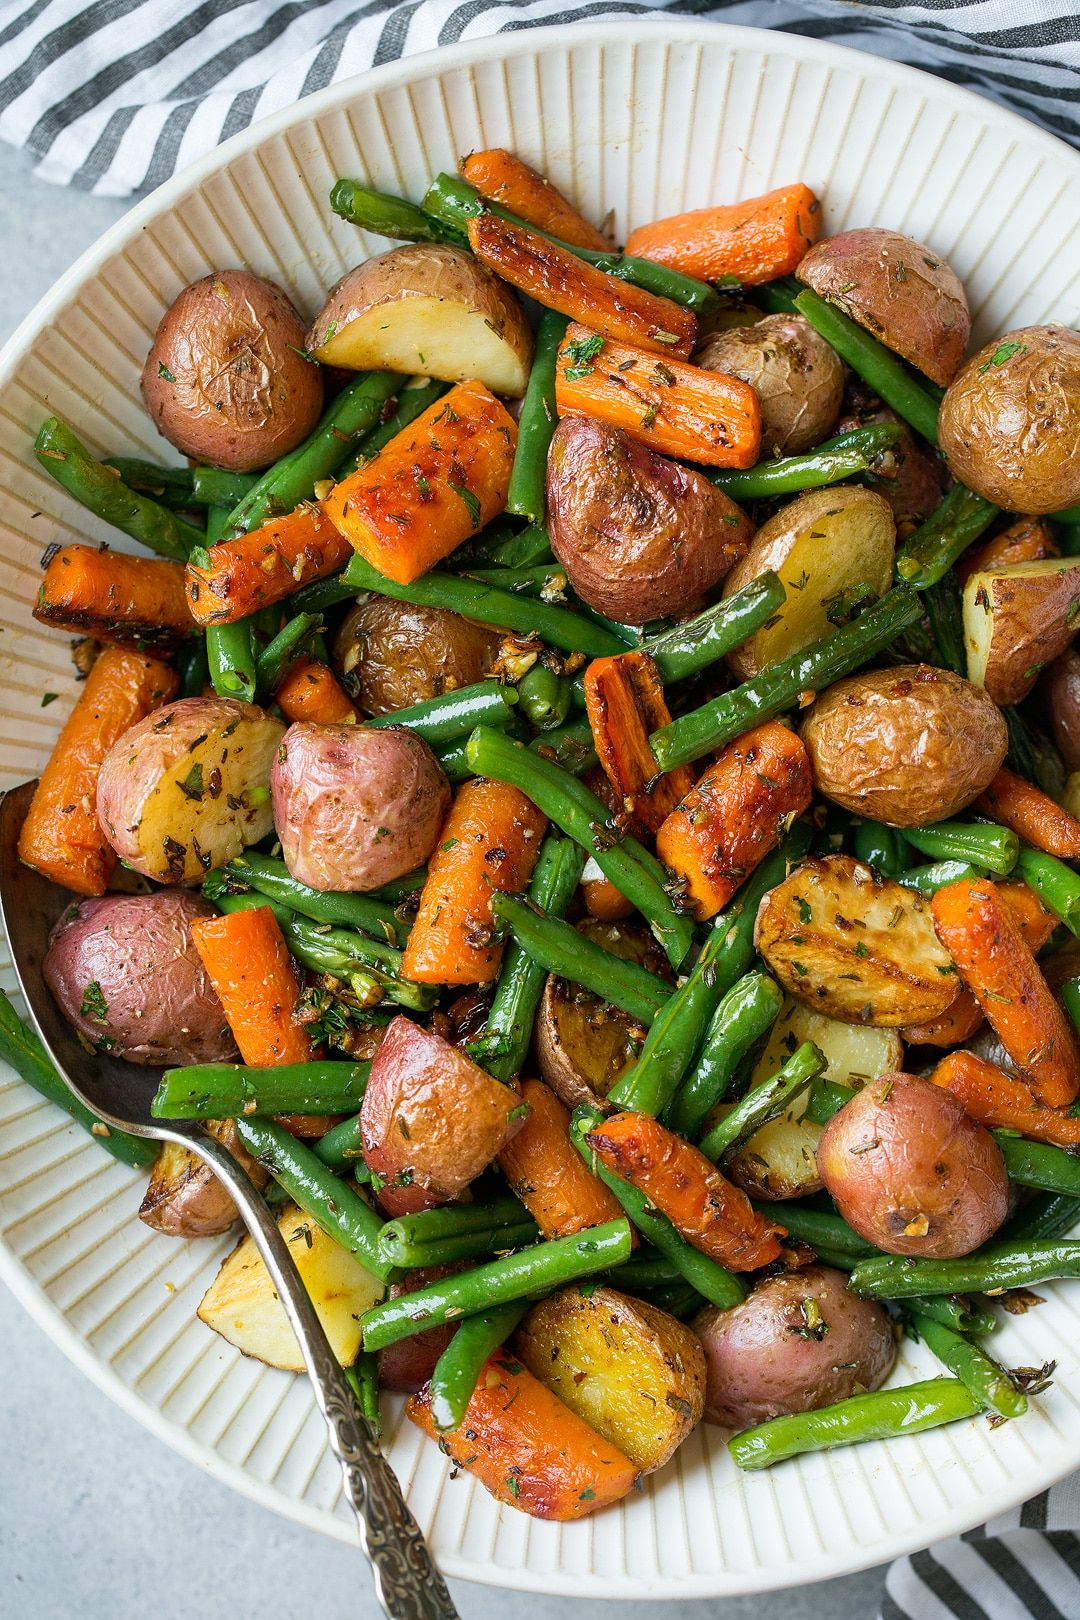 Roasted Vegetables with Garlic and Herbs - Cooking